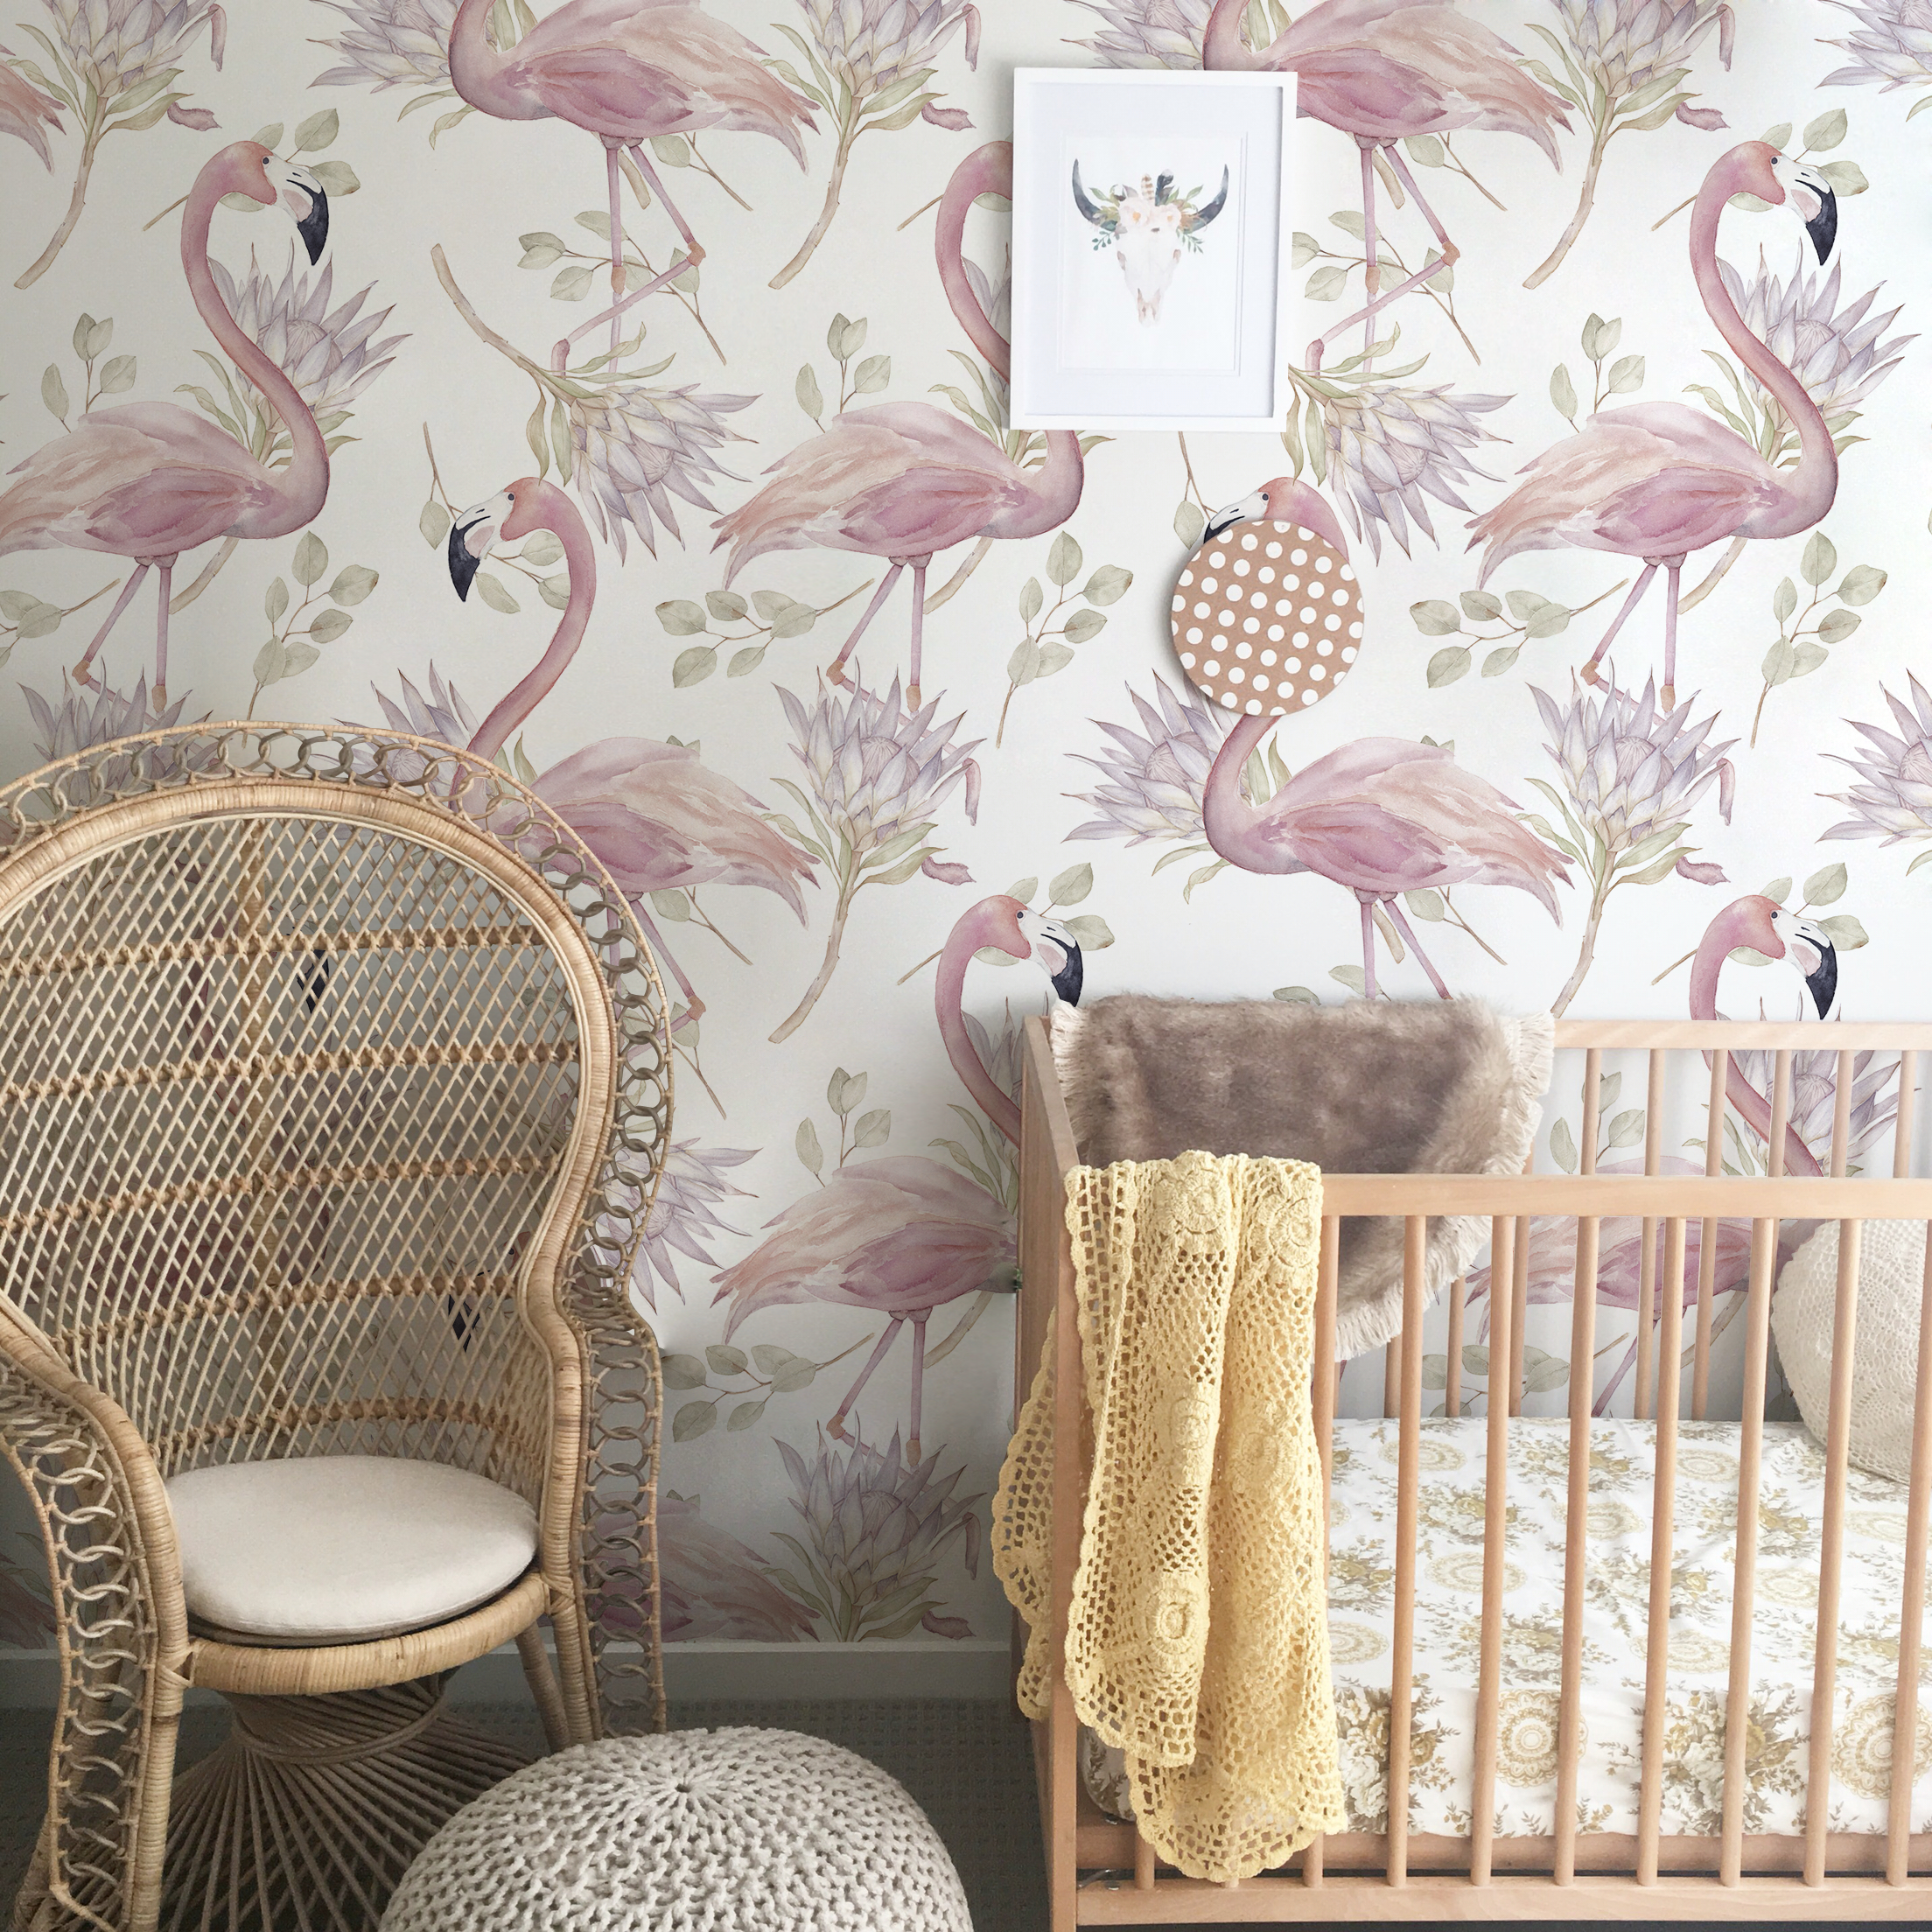 Pale Flamingo Removable Wallpaper Temporary wall covering